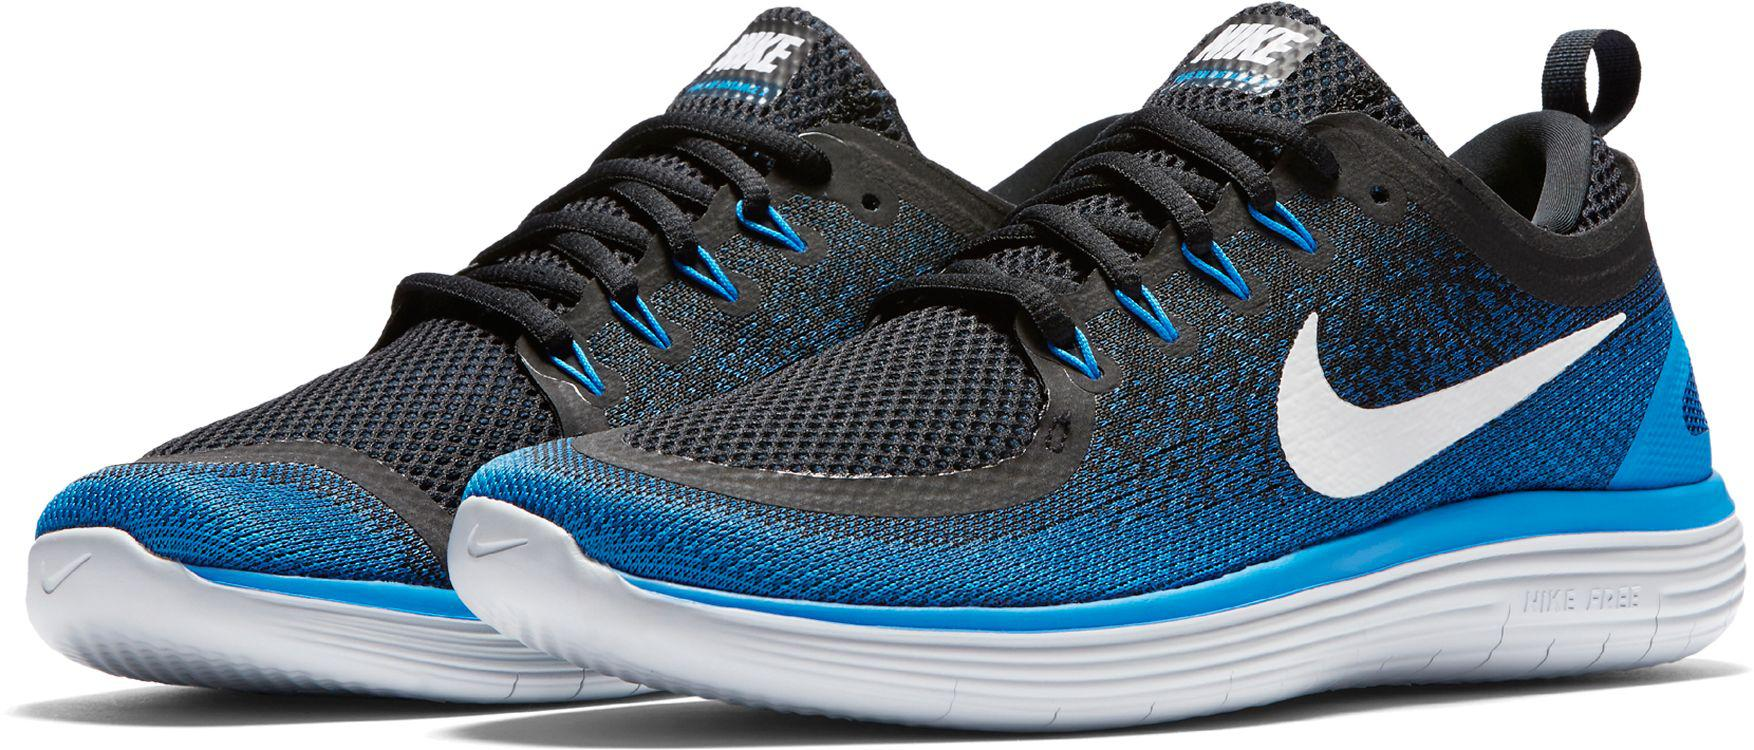 86098c51b37 Lyst - Nike Free Rn Distance 2 Running Shoes in Blue for Men